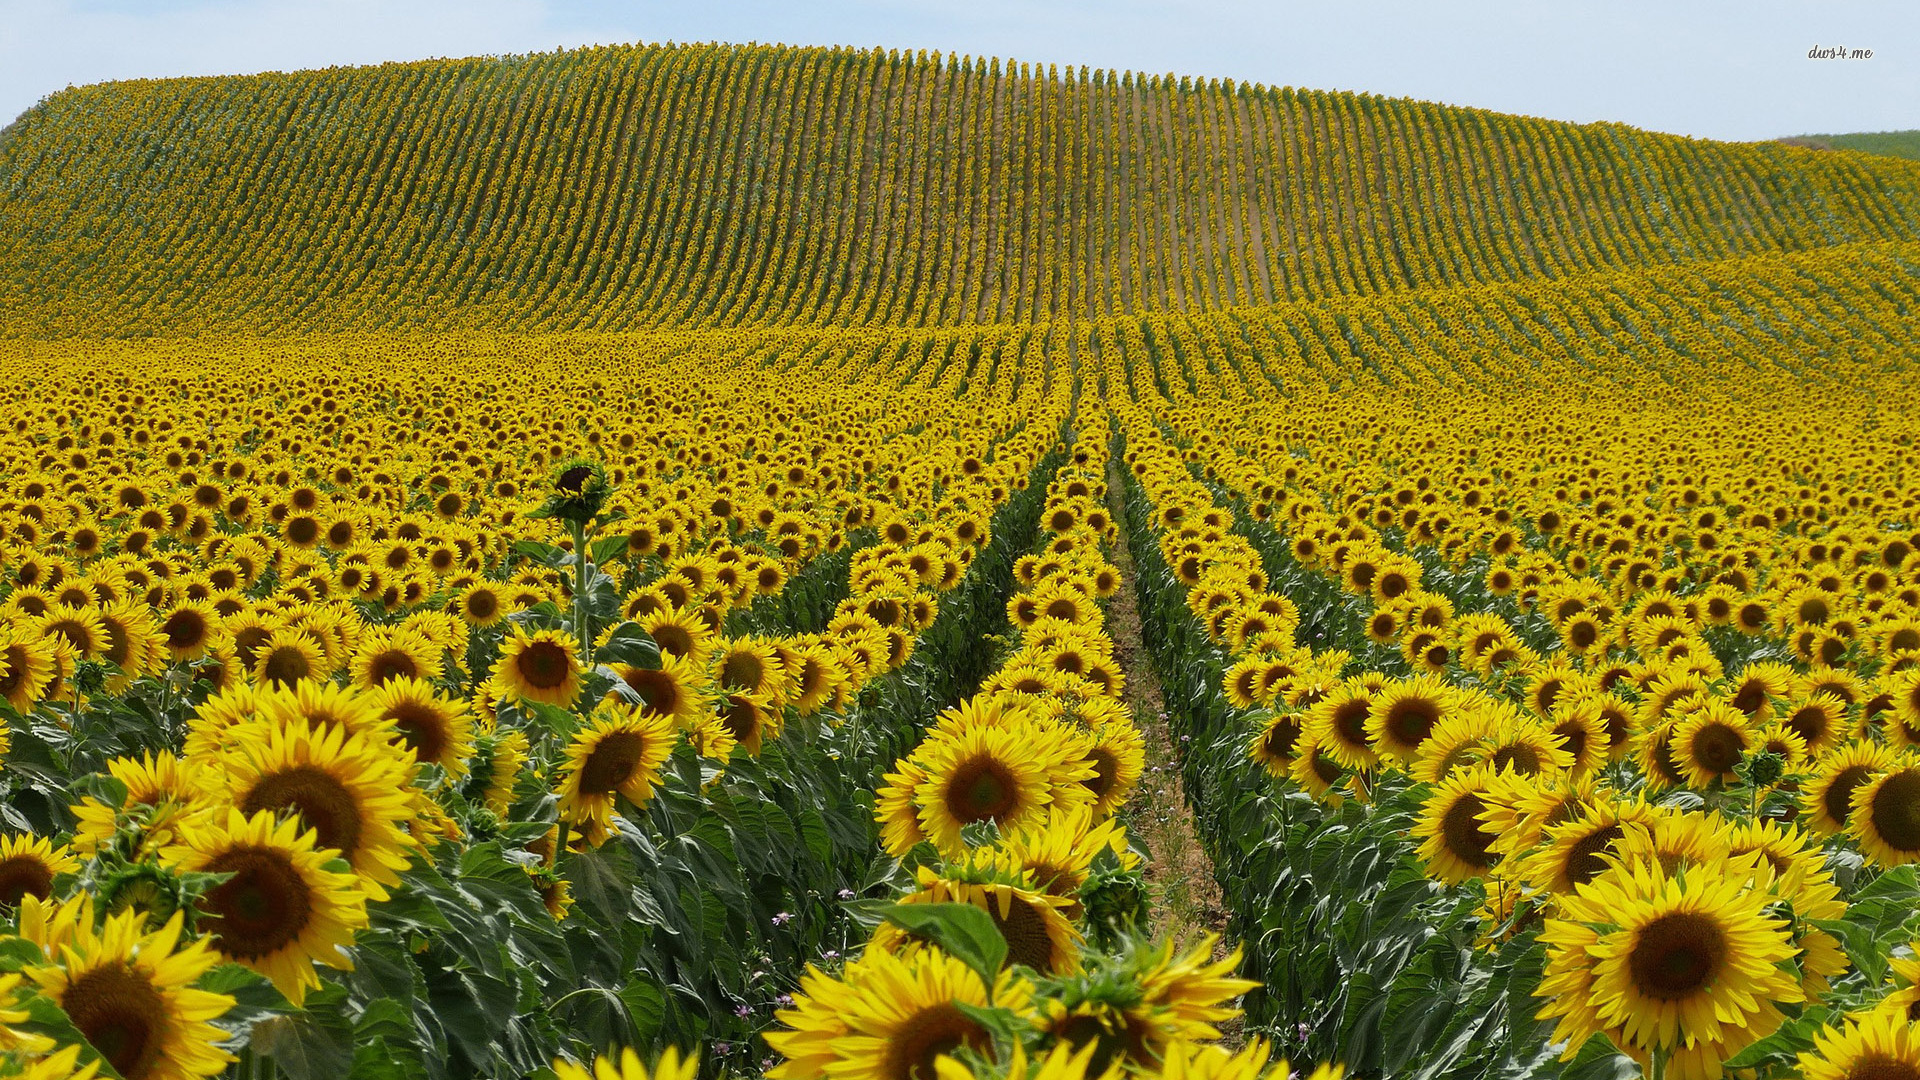 ... Sunflower field wallpaper 1920x1080 ...